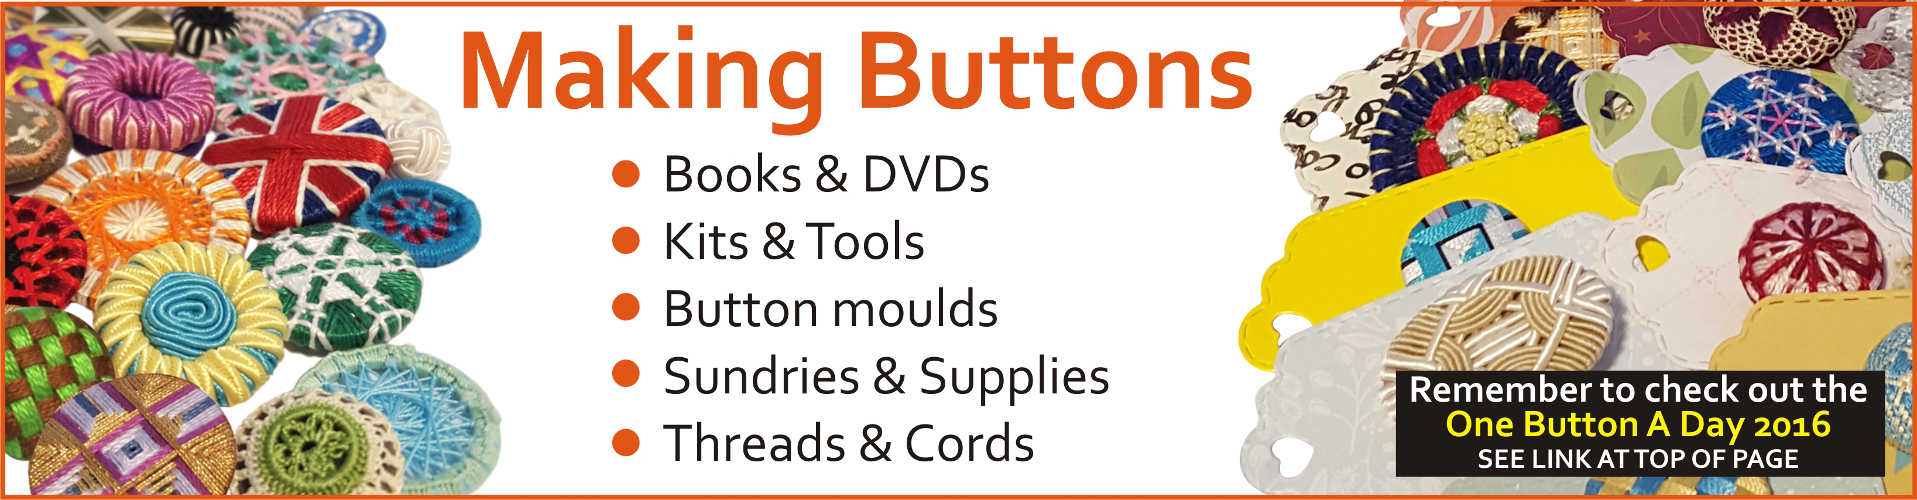 Button making supplies from Gina-B Silkworks